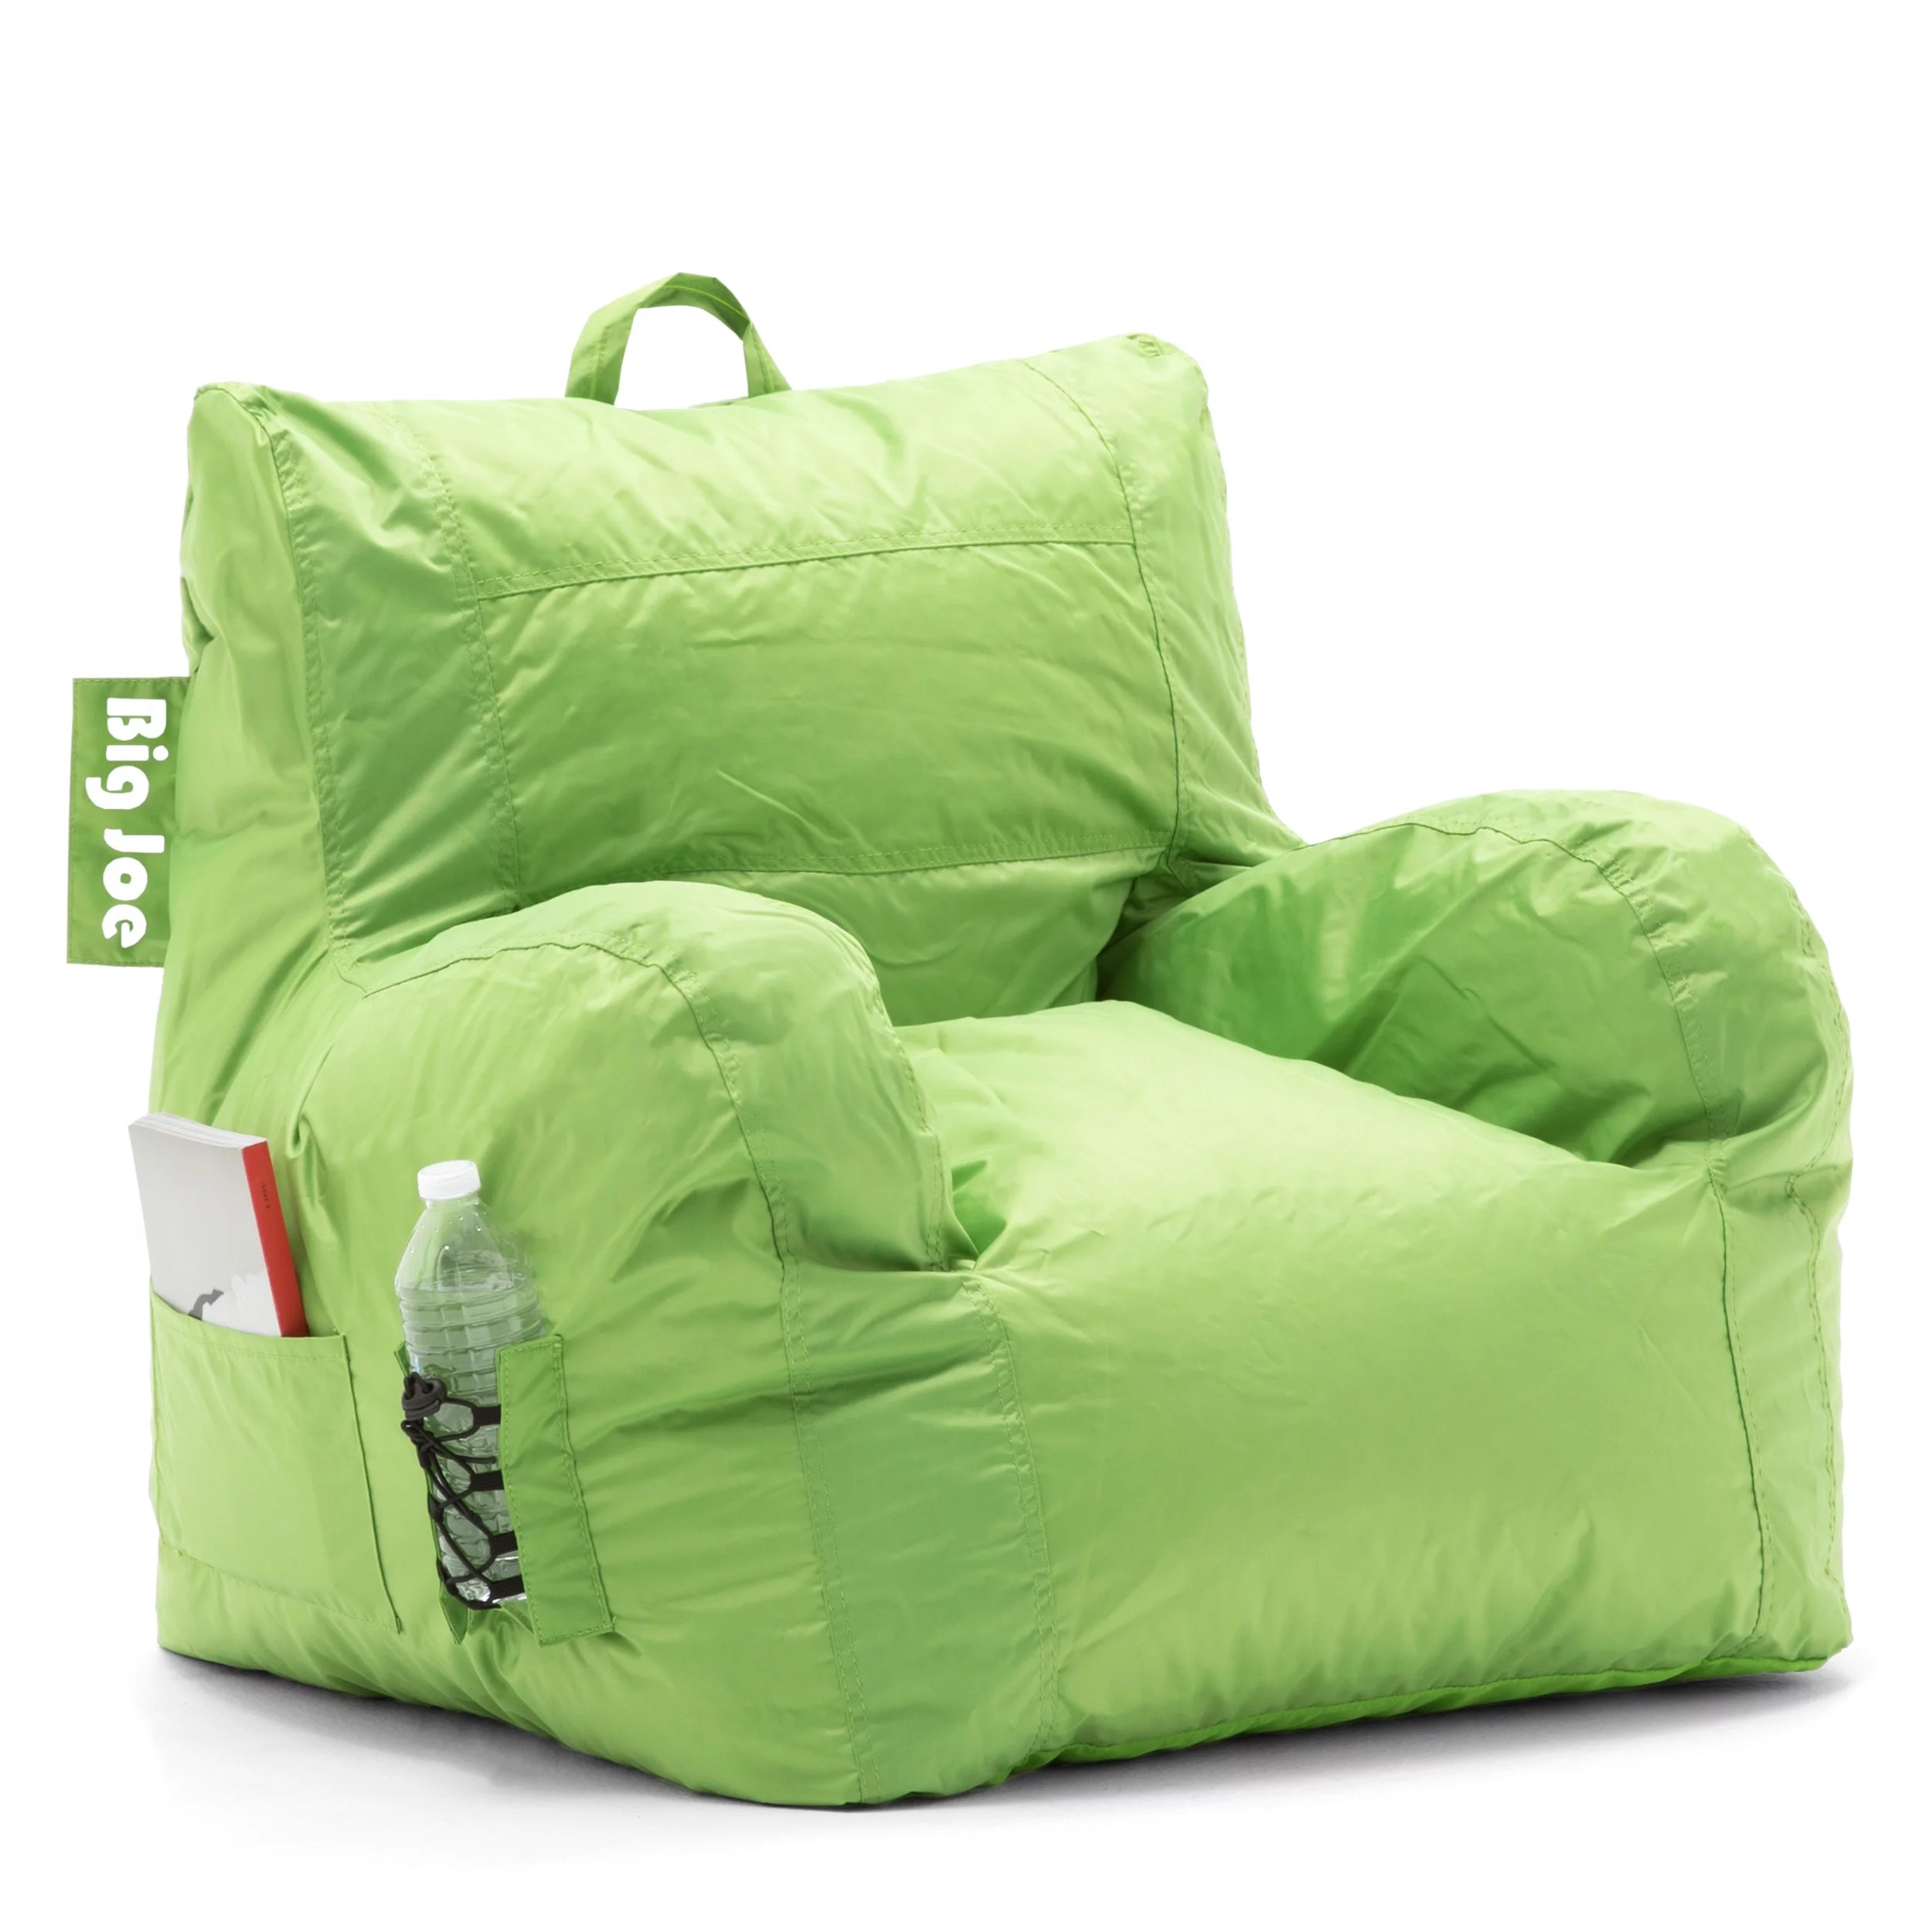 big joe bean bag chair multiple colors 33 x 32 25 installing beadboard with rail walmart com